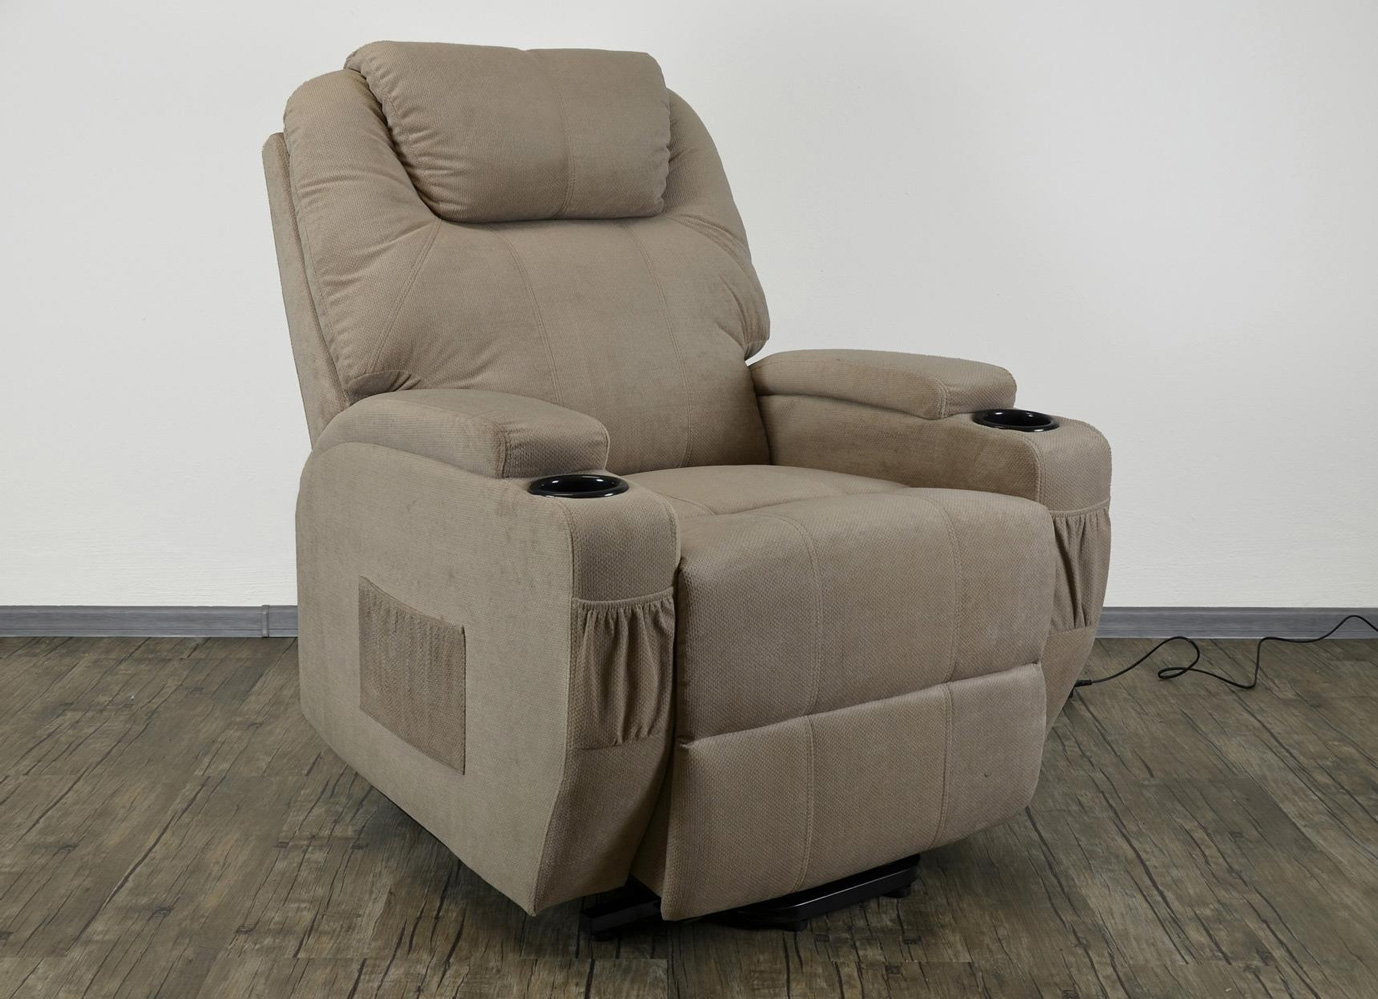 Electric recliner chair MD-18 & Electric recliner chair MD-18 | MADdiamond islam-shia.org